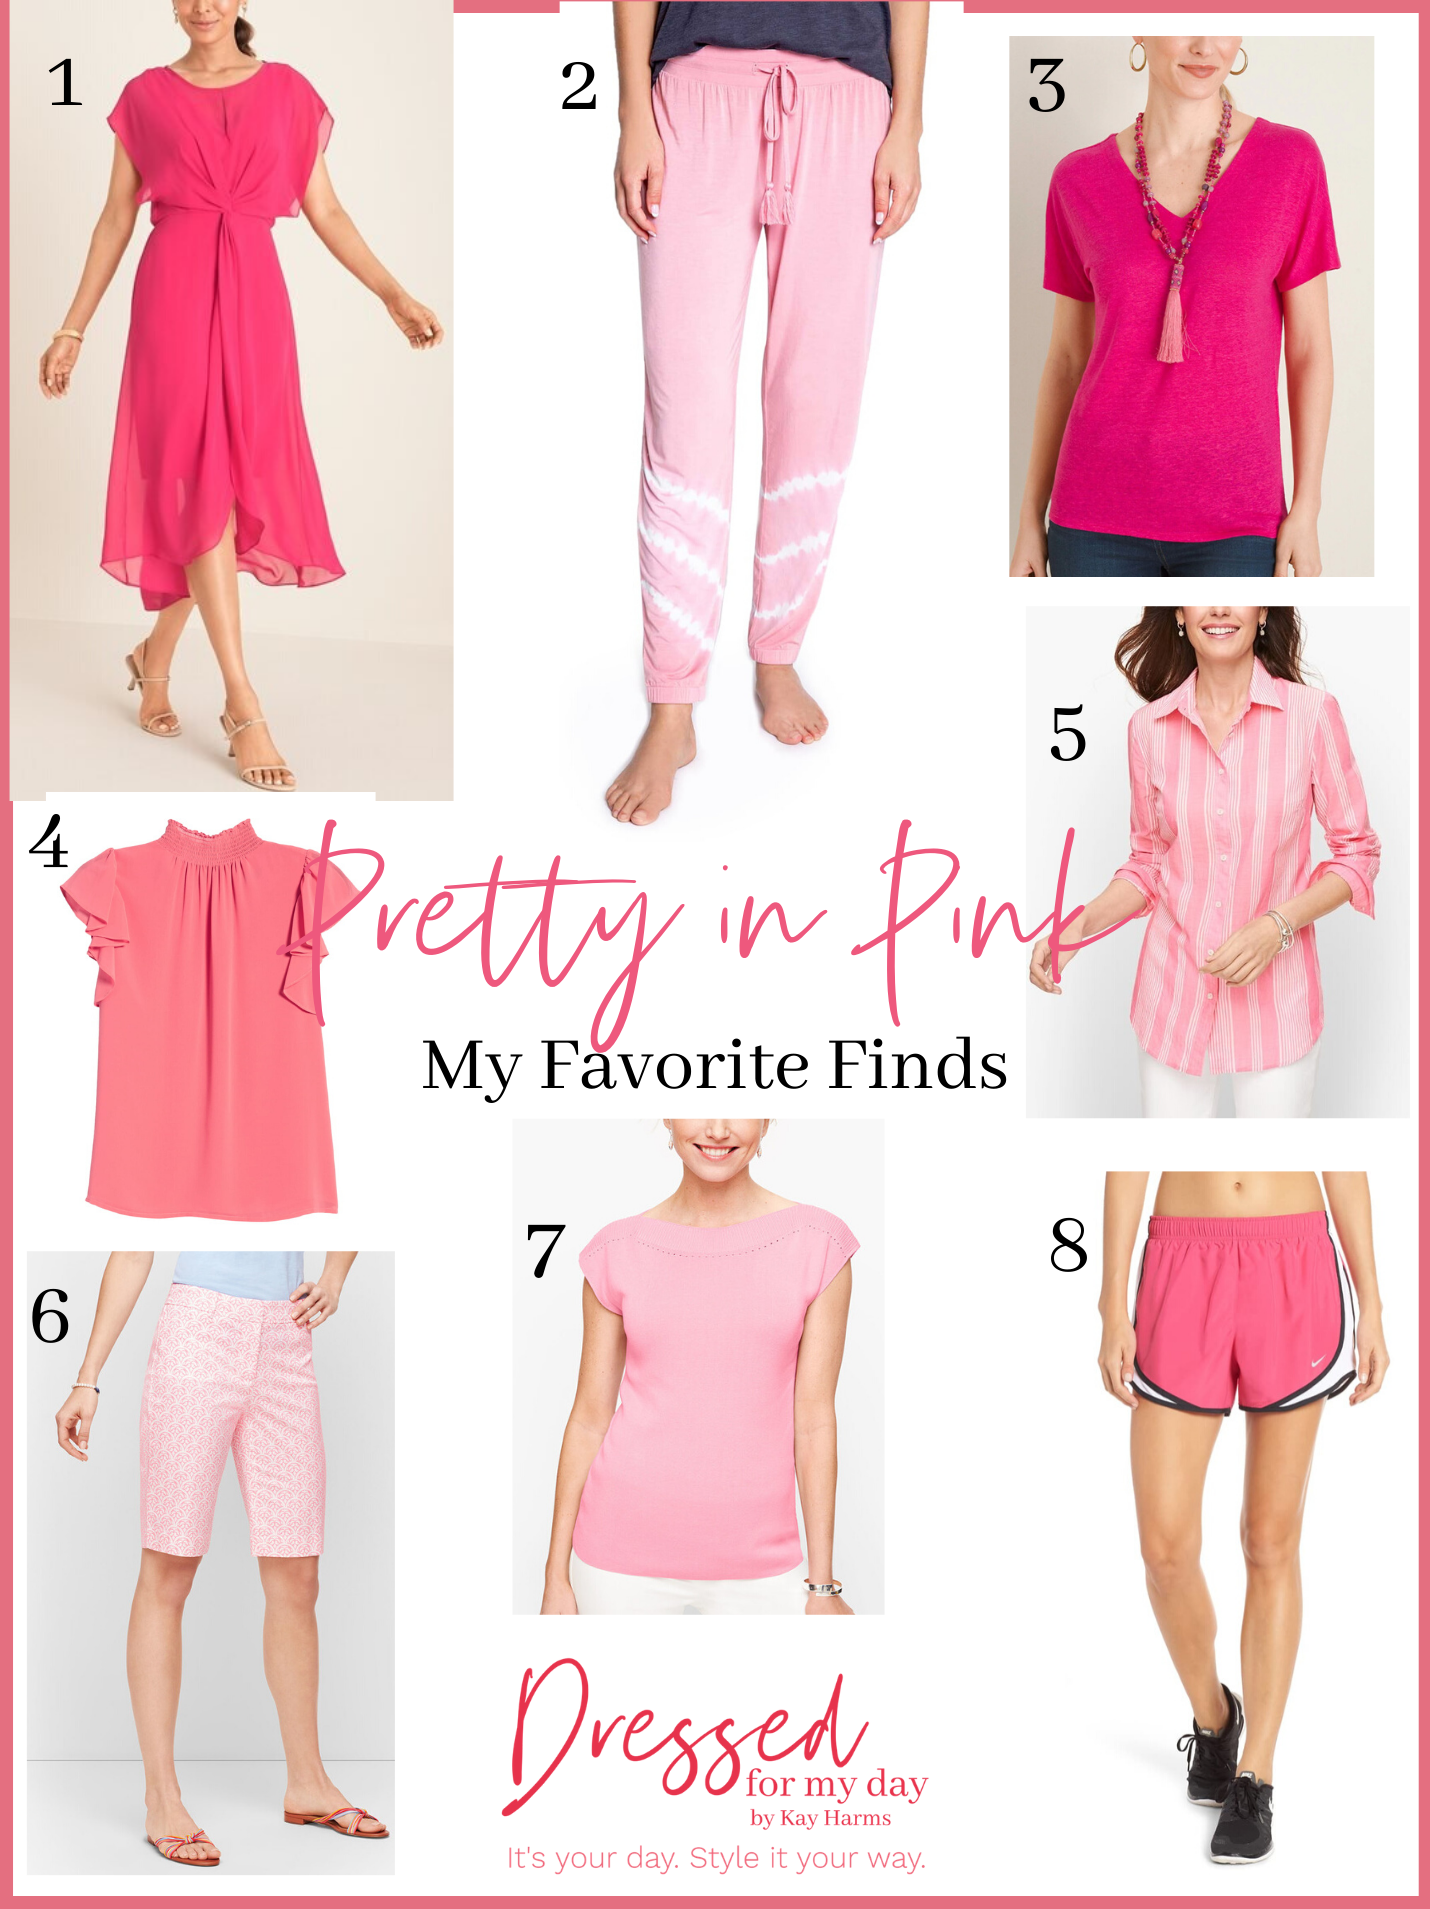 Pretty Pink - My Favorite Finds